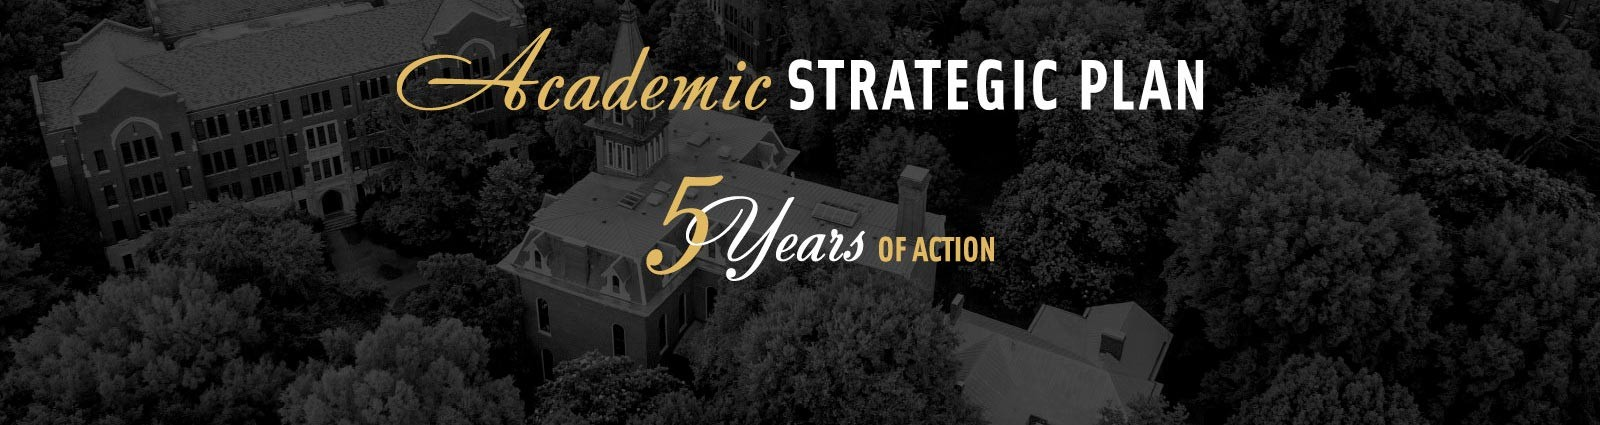 Academic Strategic Plan's five-year progress report shows transformative impact